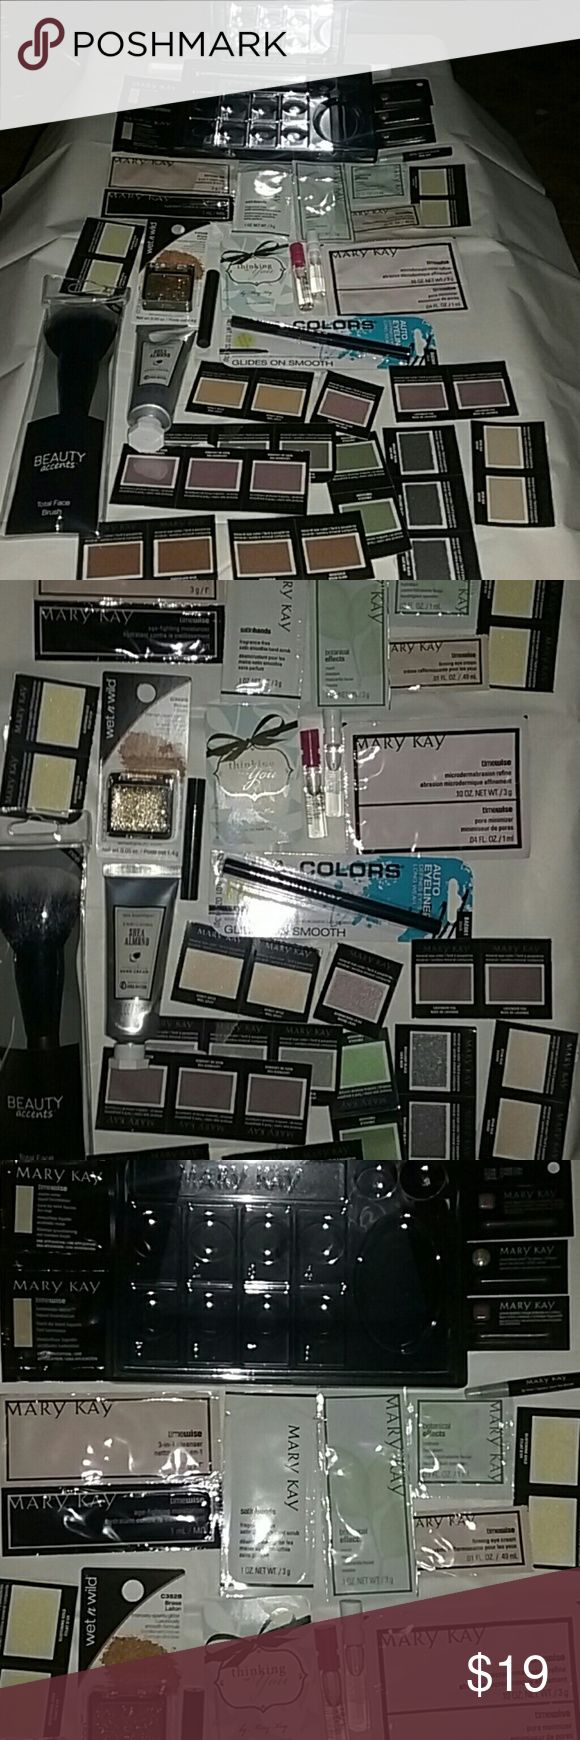 Make-up set *Mostly Mary Kay! Will be packaged cut Mary-Kay mirror compacts flat.Make-up tray.Timewise foundation 2 different colors, 3 lip gloss different colors, lip liner,timewise 3-in-1 cleanser 2 step,timewise microderm abrasion 2 step,satinhands hand scrub, botanical effects mask & cleanser,timewise firming eye cream,2 spray bottles perfume, perfume test card,black mascara, 12 different color eyeshadow total(26)Not Mary Kay-sparkly glitter for face,Shea almond hand cream, face…